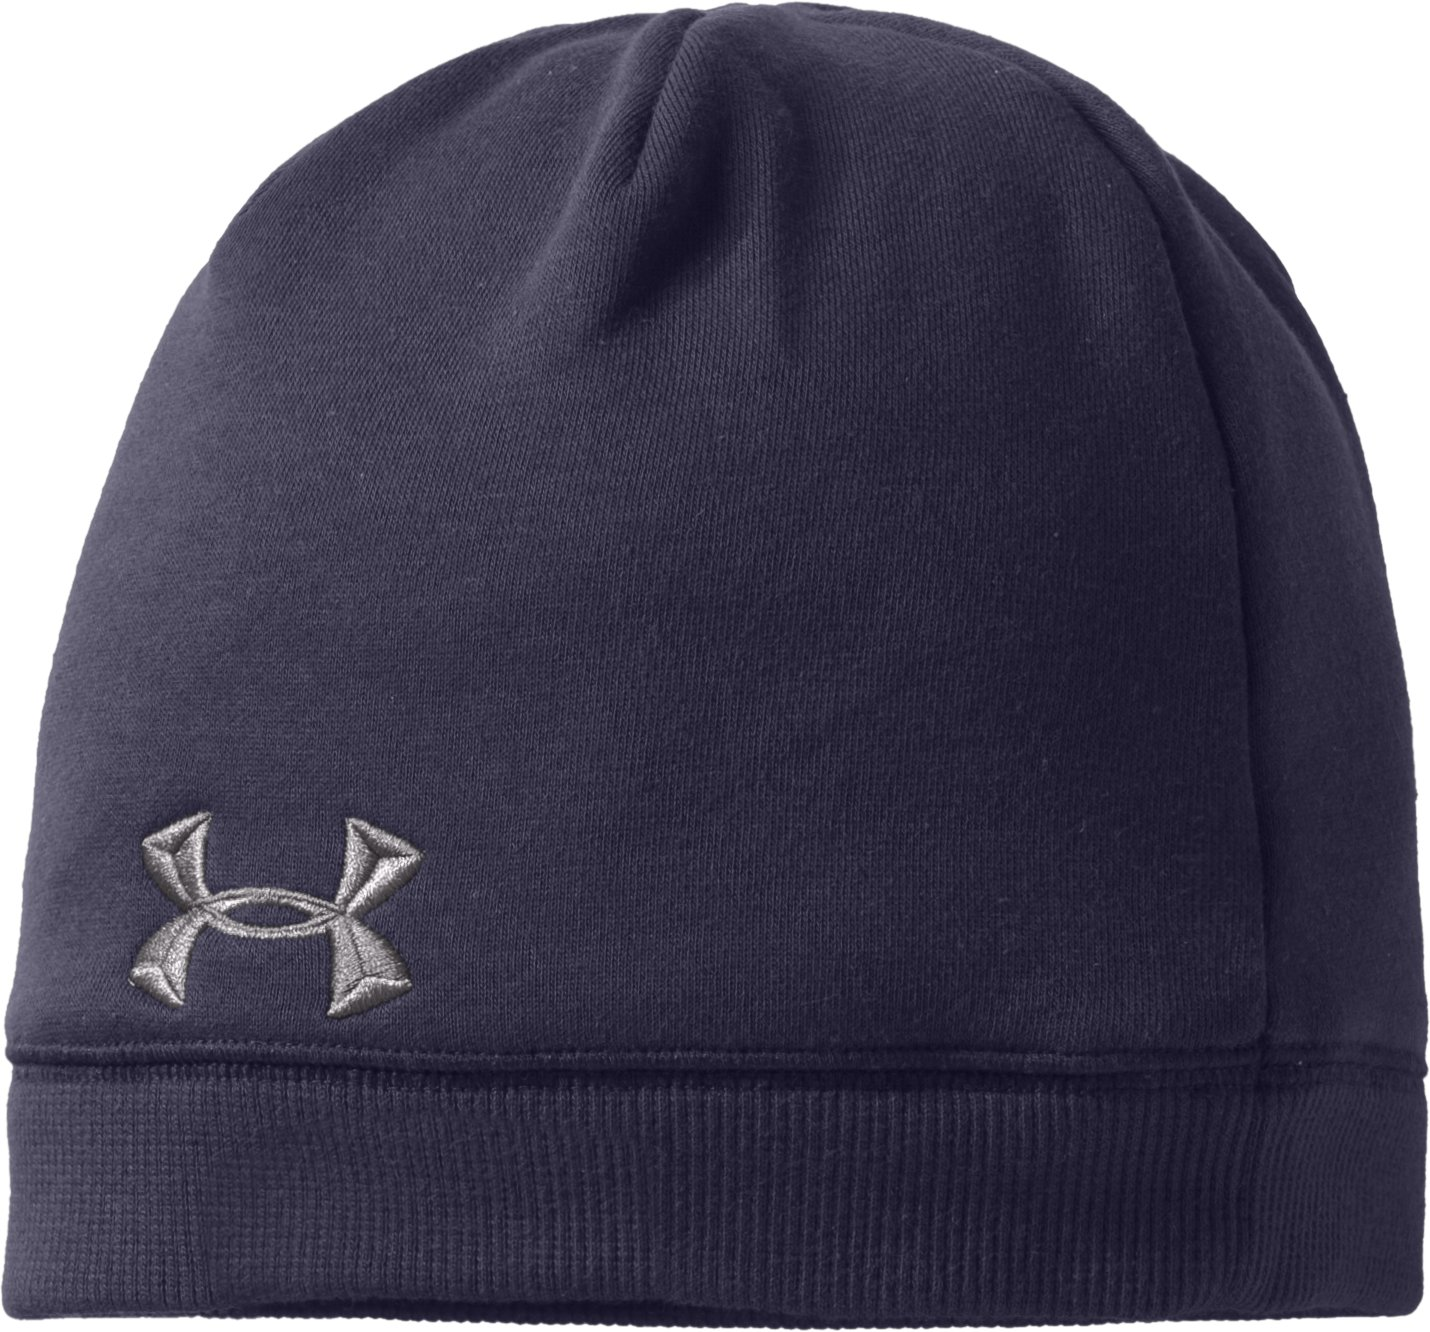 Mens Charged Cotton® Storm Beanie, Midnight Navy, zoomed image